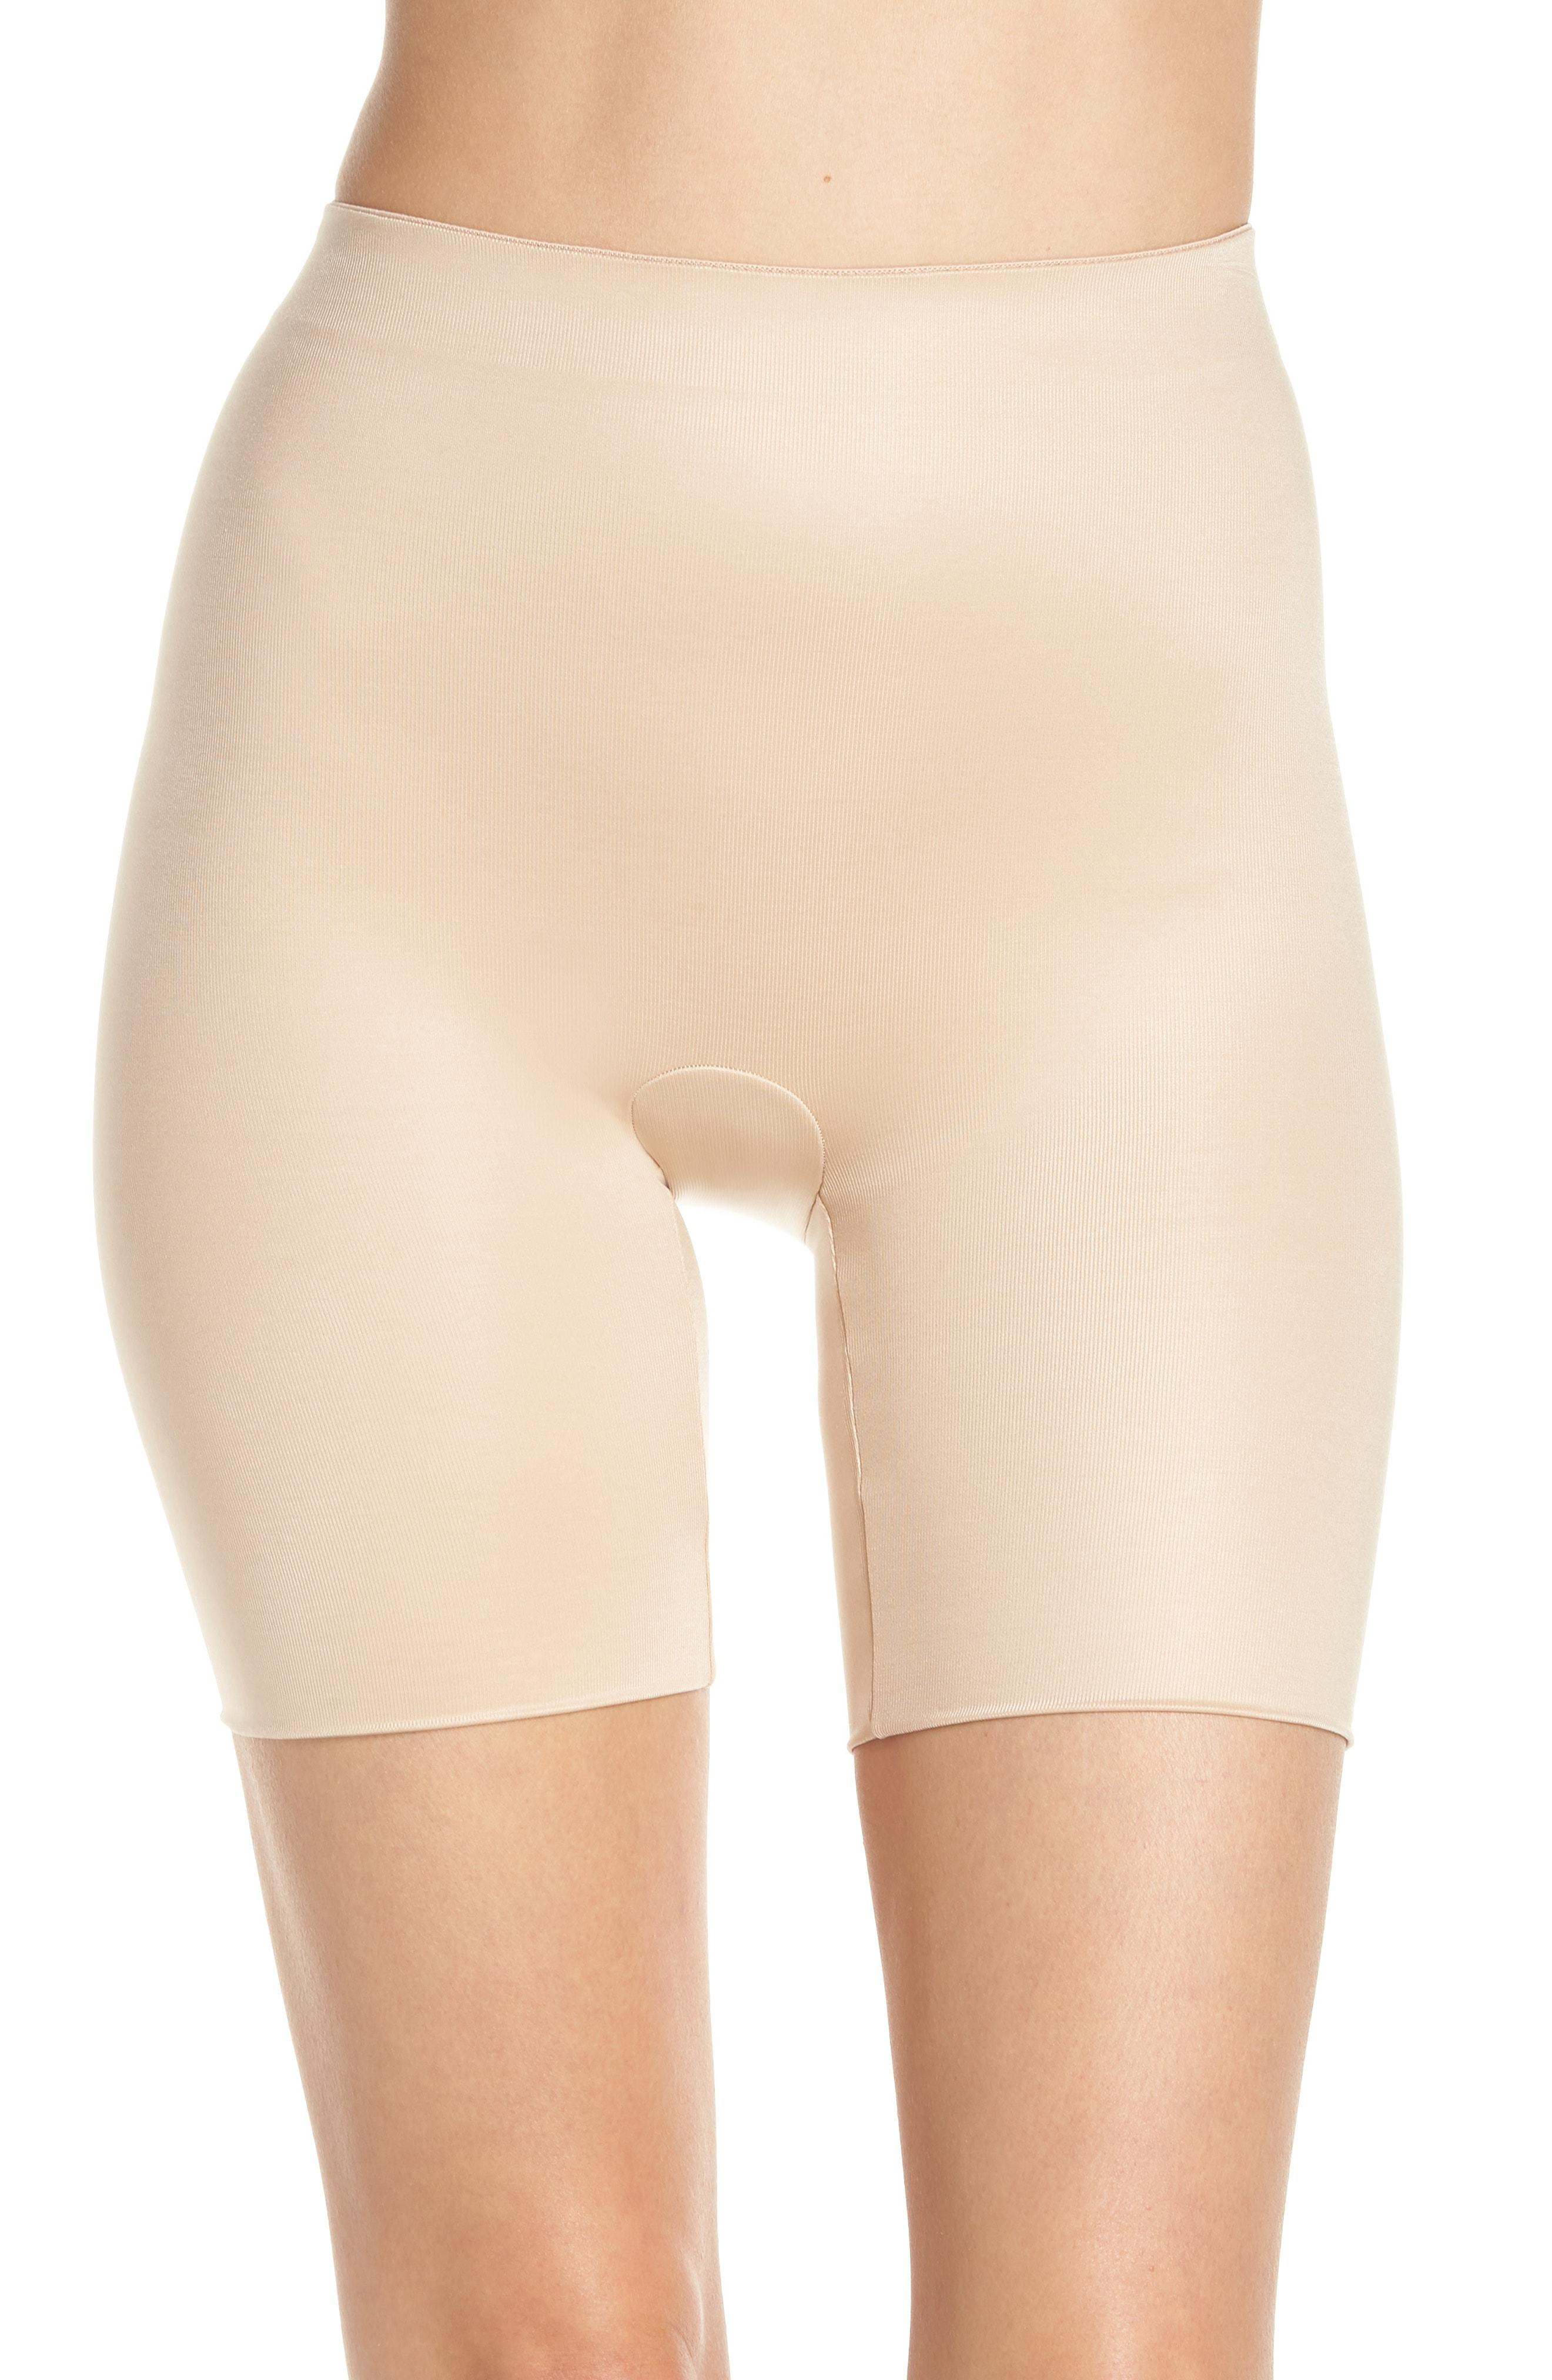 e326d739f1595 Spanx Spanx Suit Your Fancy Butt Enhancer Shorts in Natural - Lyst